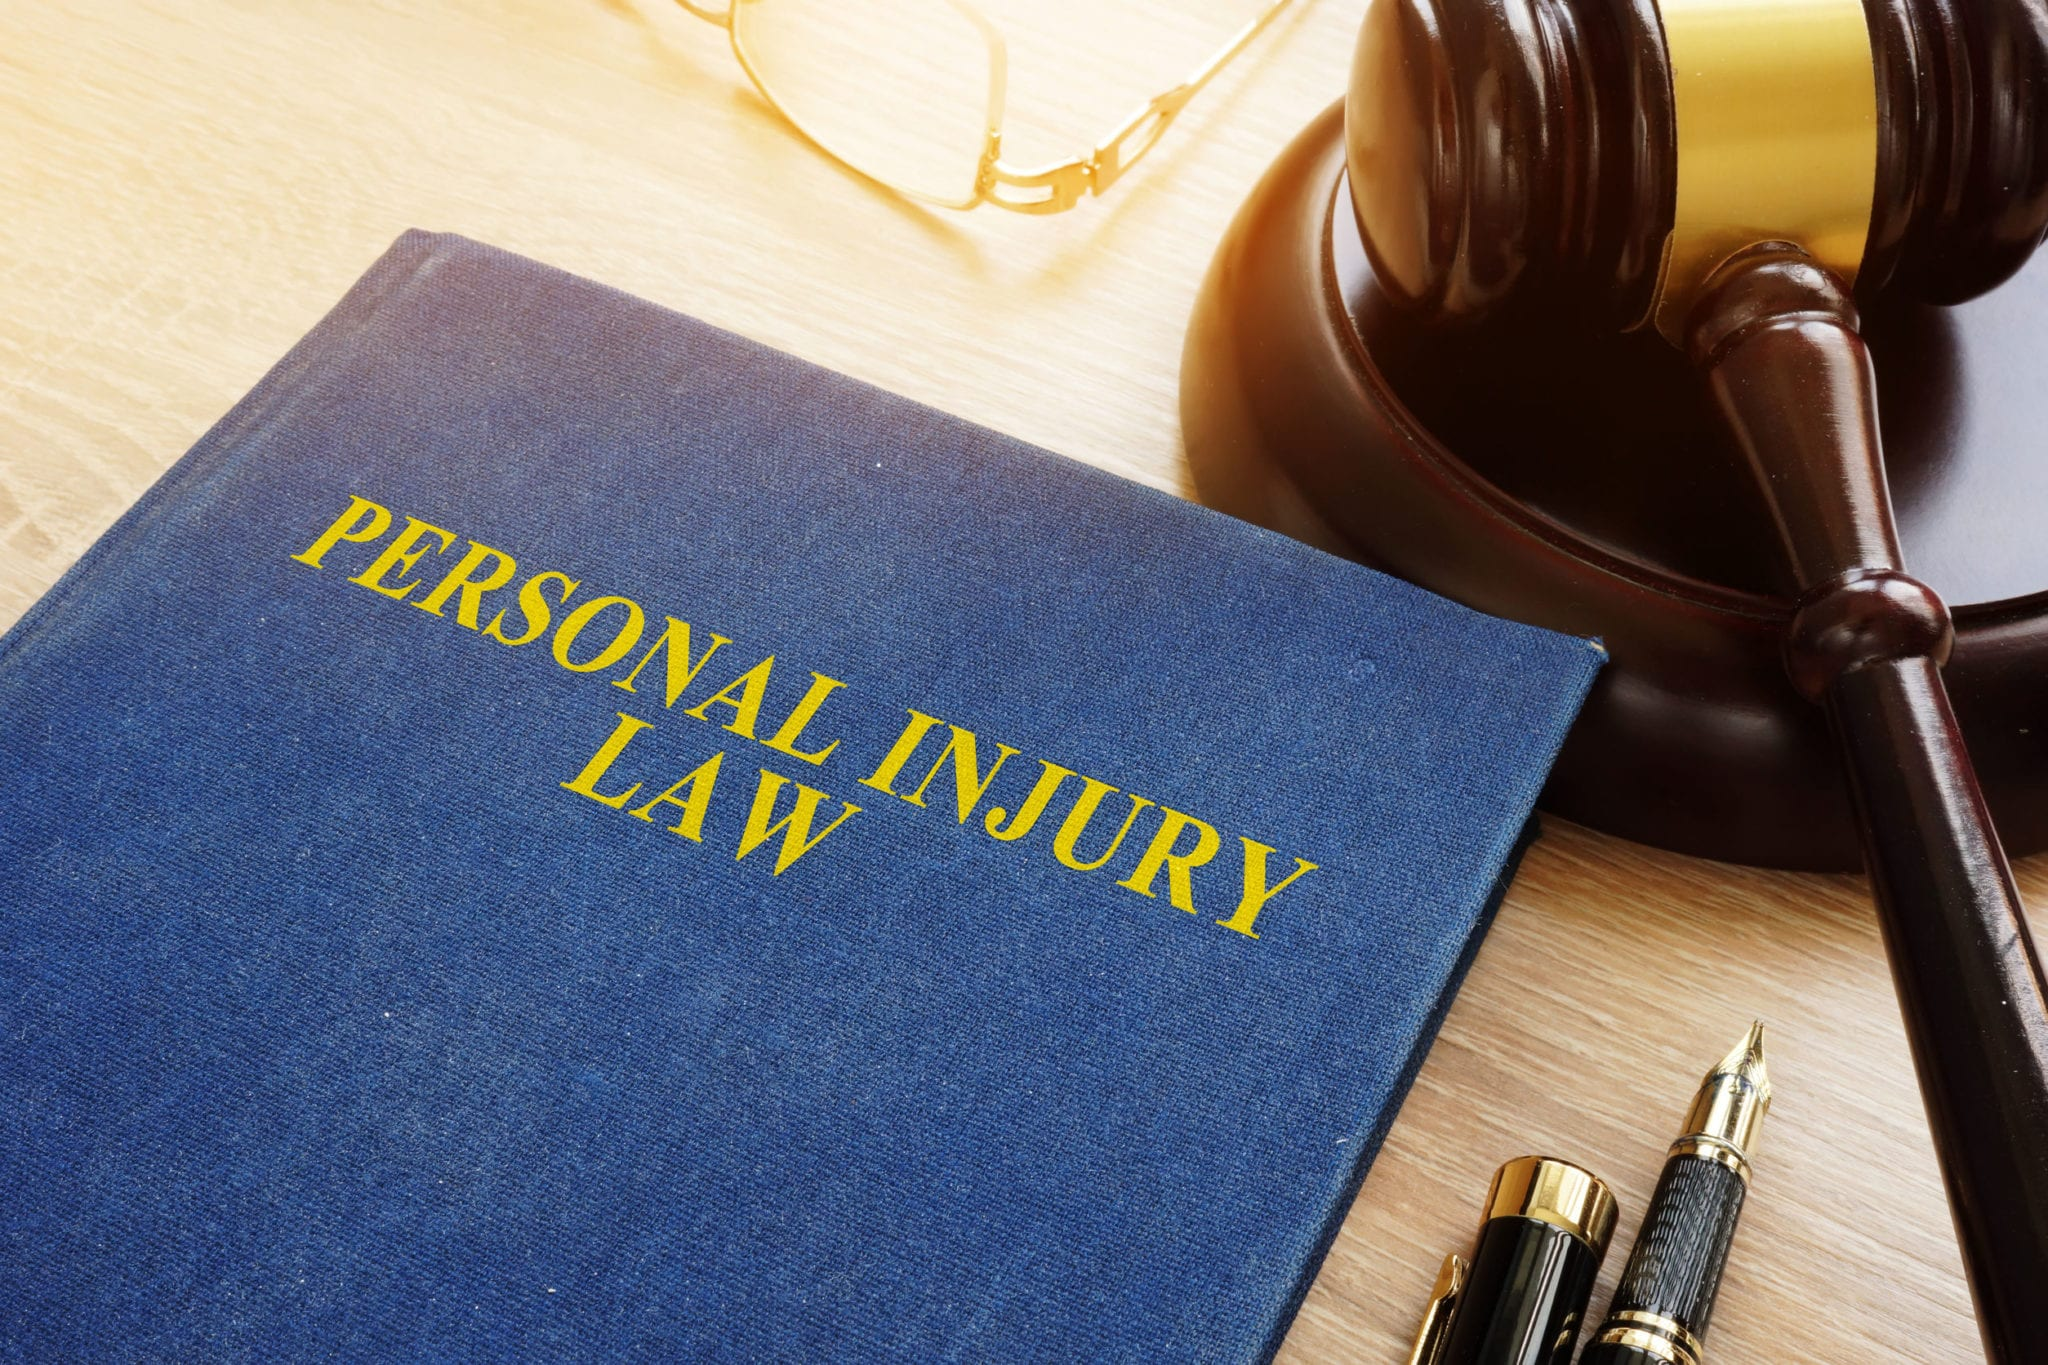 Why Might a Drunk Driver Not Be Held Liable in a Texas Auto Injury Claim?